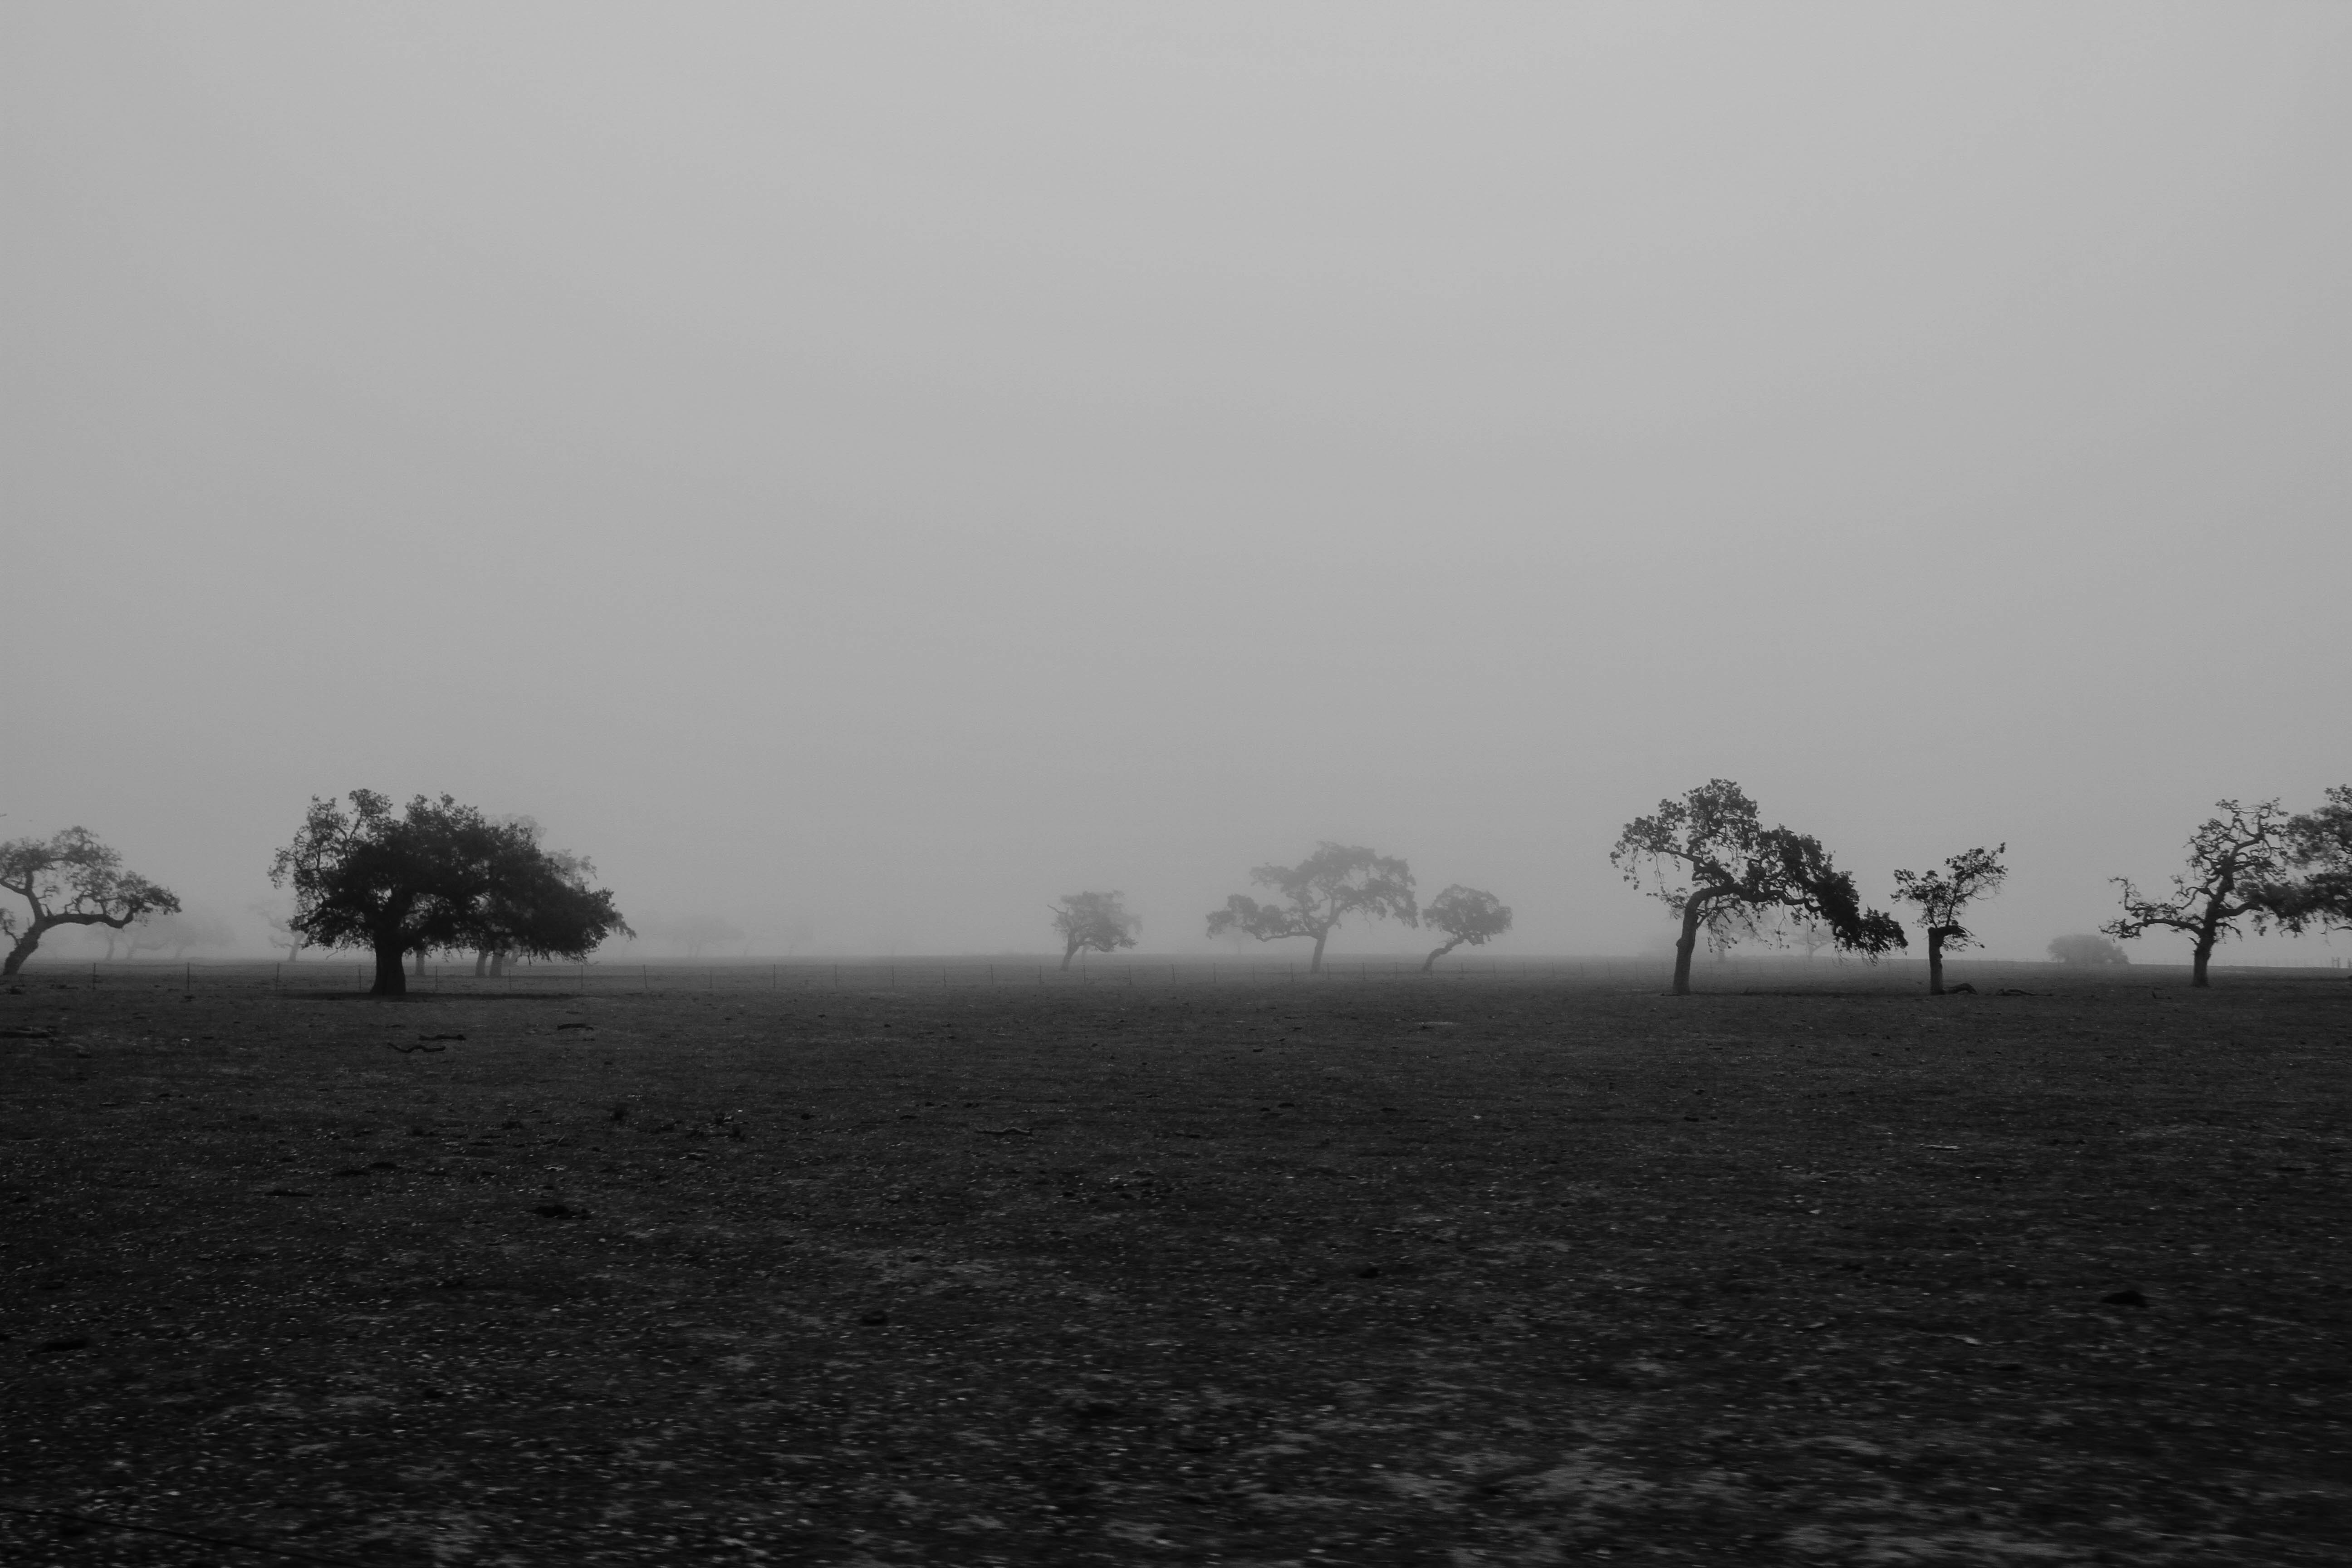 Monochromatic view of a desolate field with trees in the fog